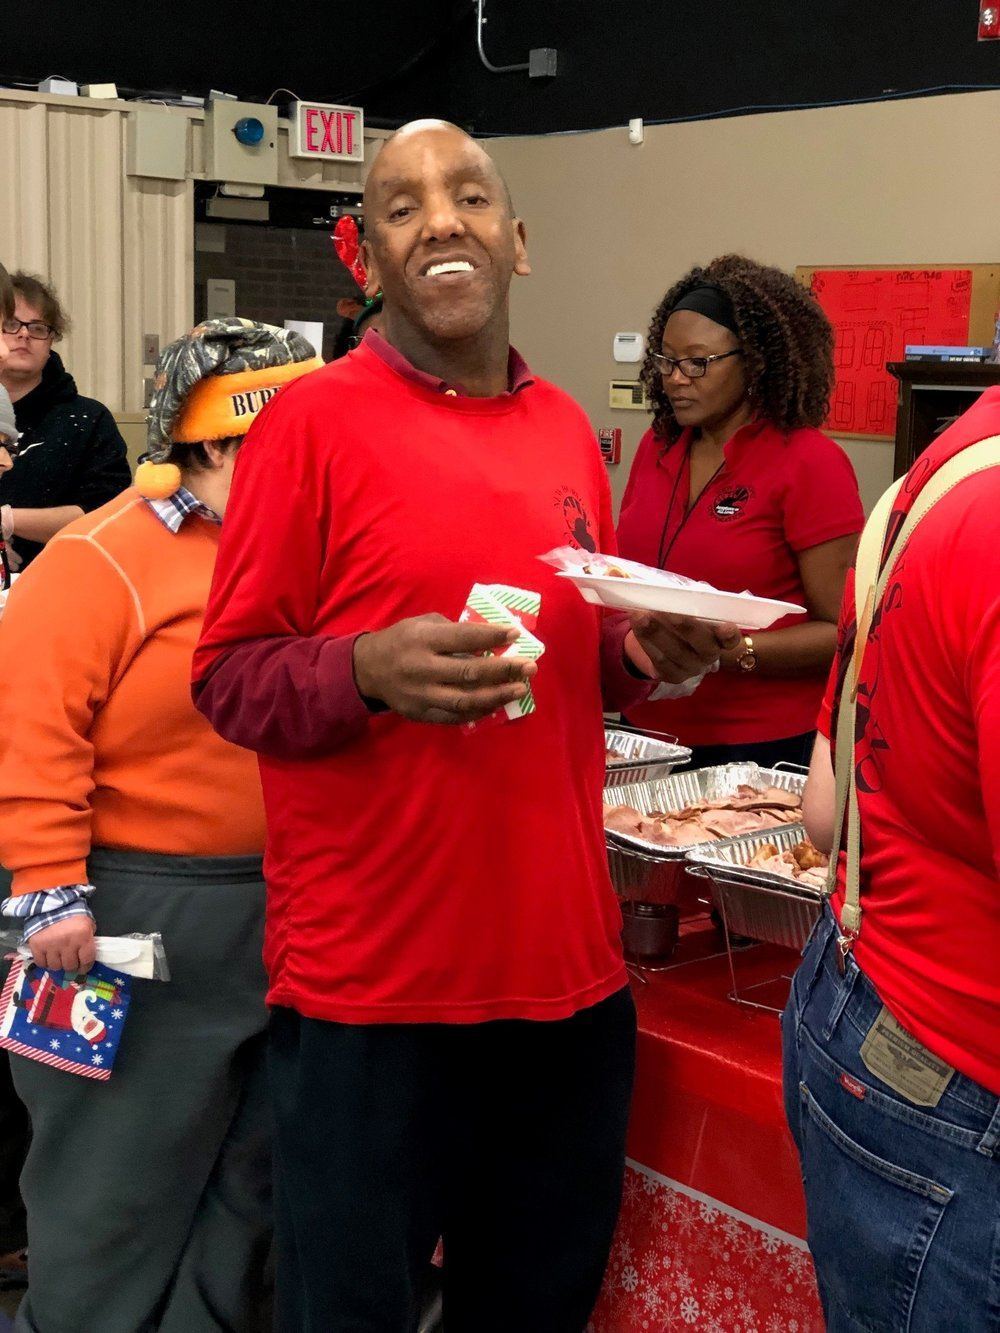 Michael is all smiles as usual. Aisha in the background there doing some manual labor.